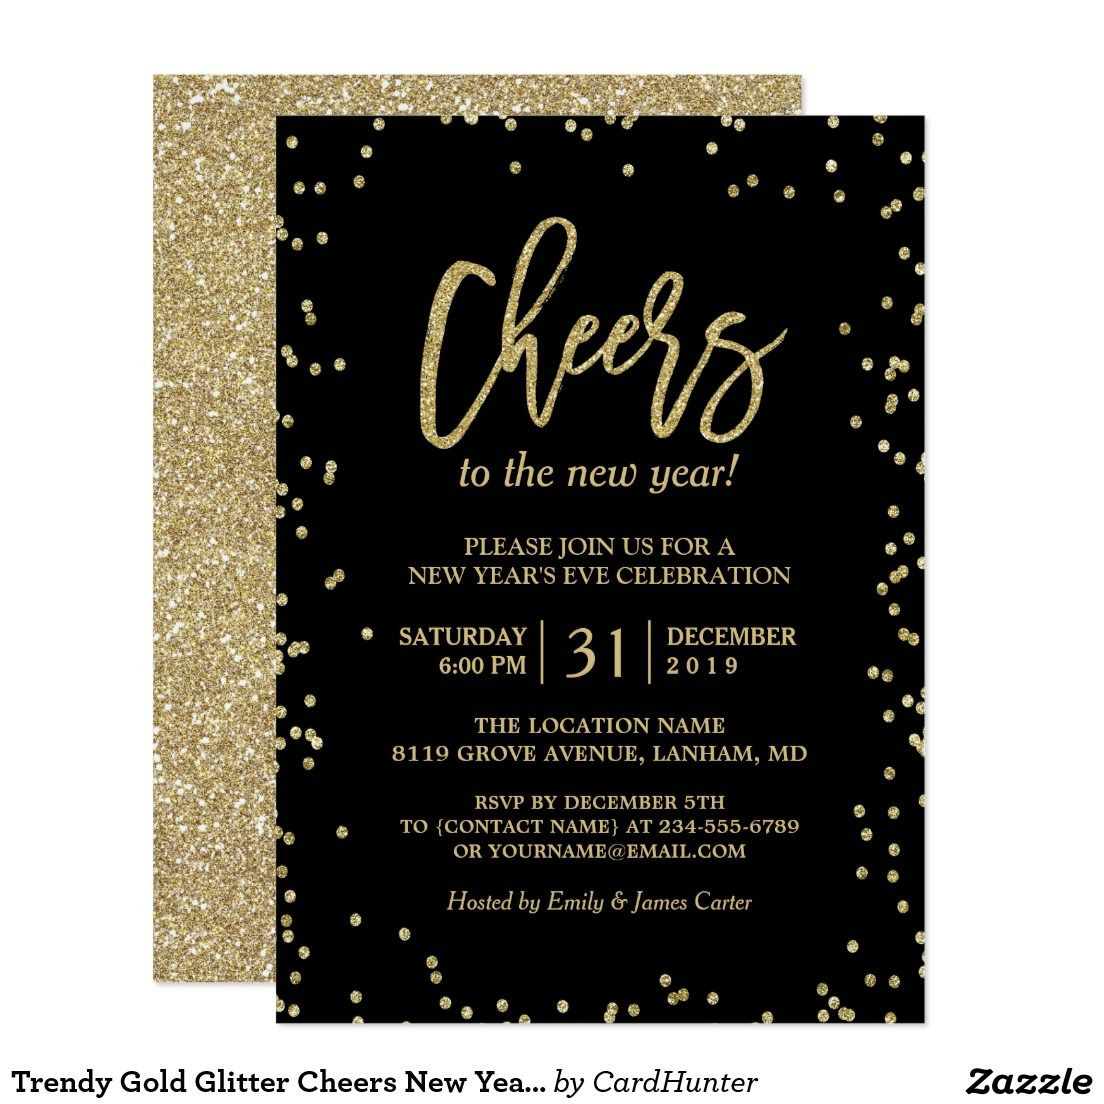 Create Your Own Invitation Zazzle Com New Years Eve Invitations Party Invite Template New Years Eve Party